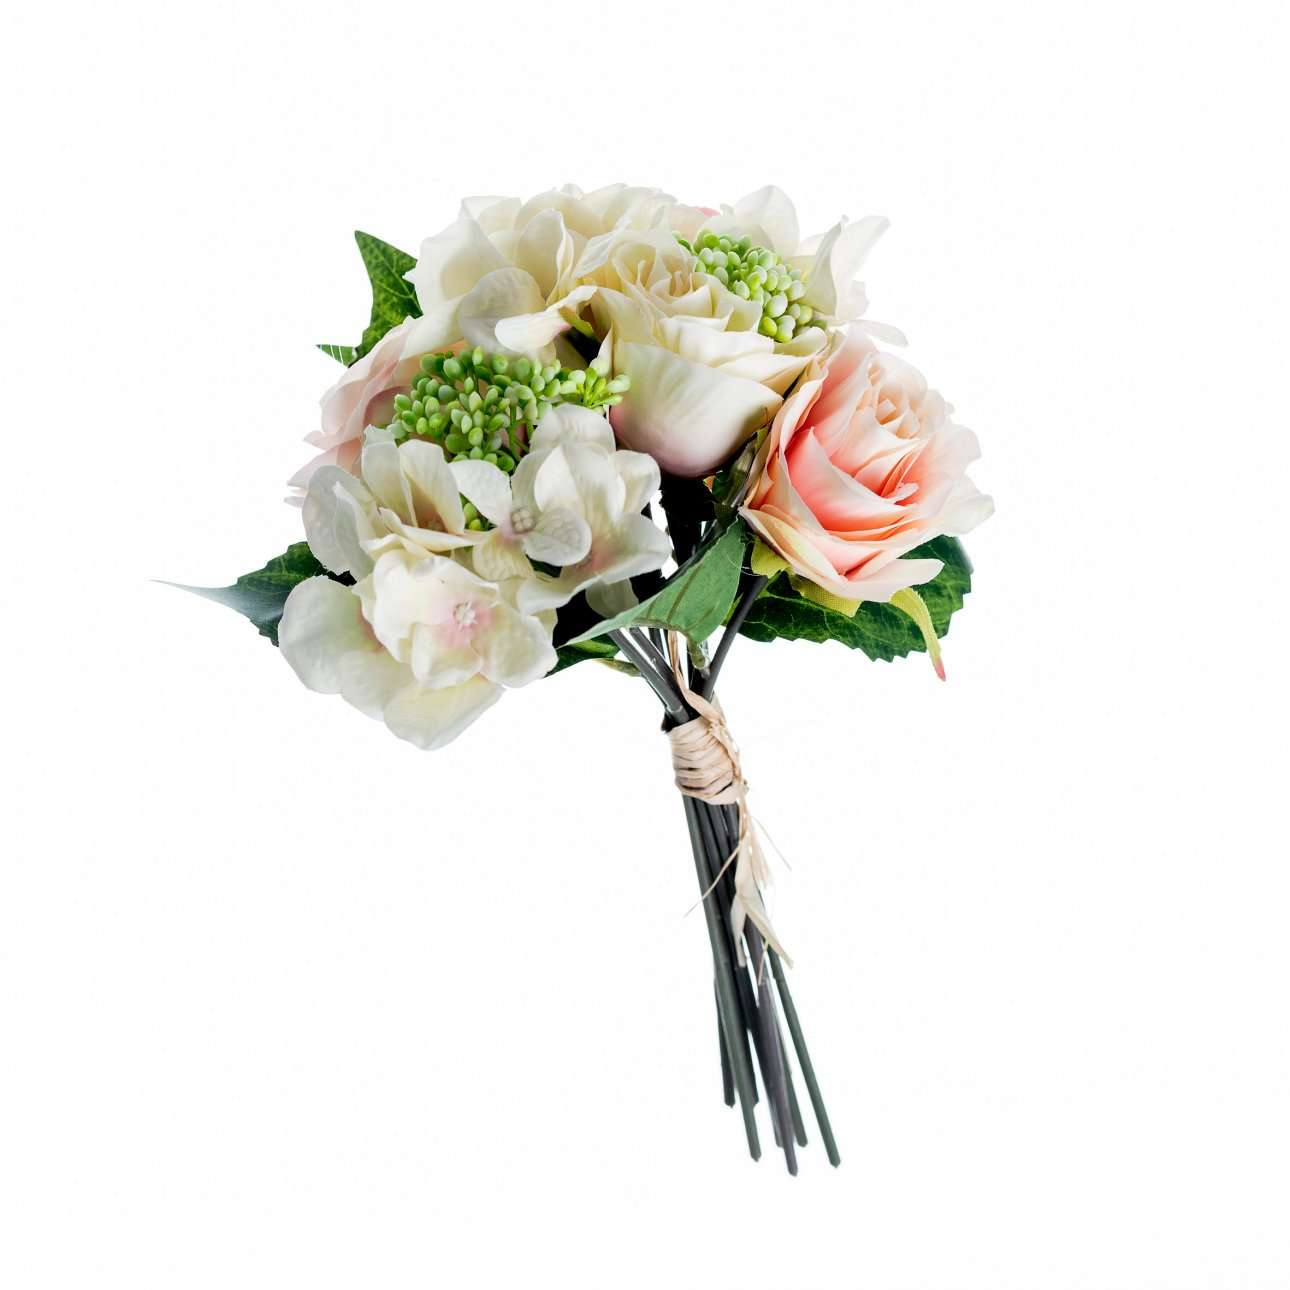 Artificial Pink and White Hydrangea and Roses Bouquet H 32 cm